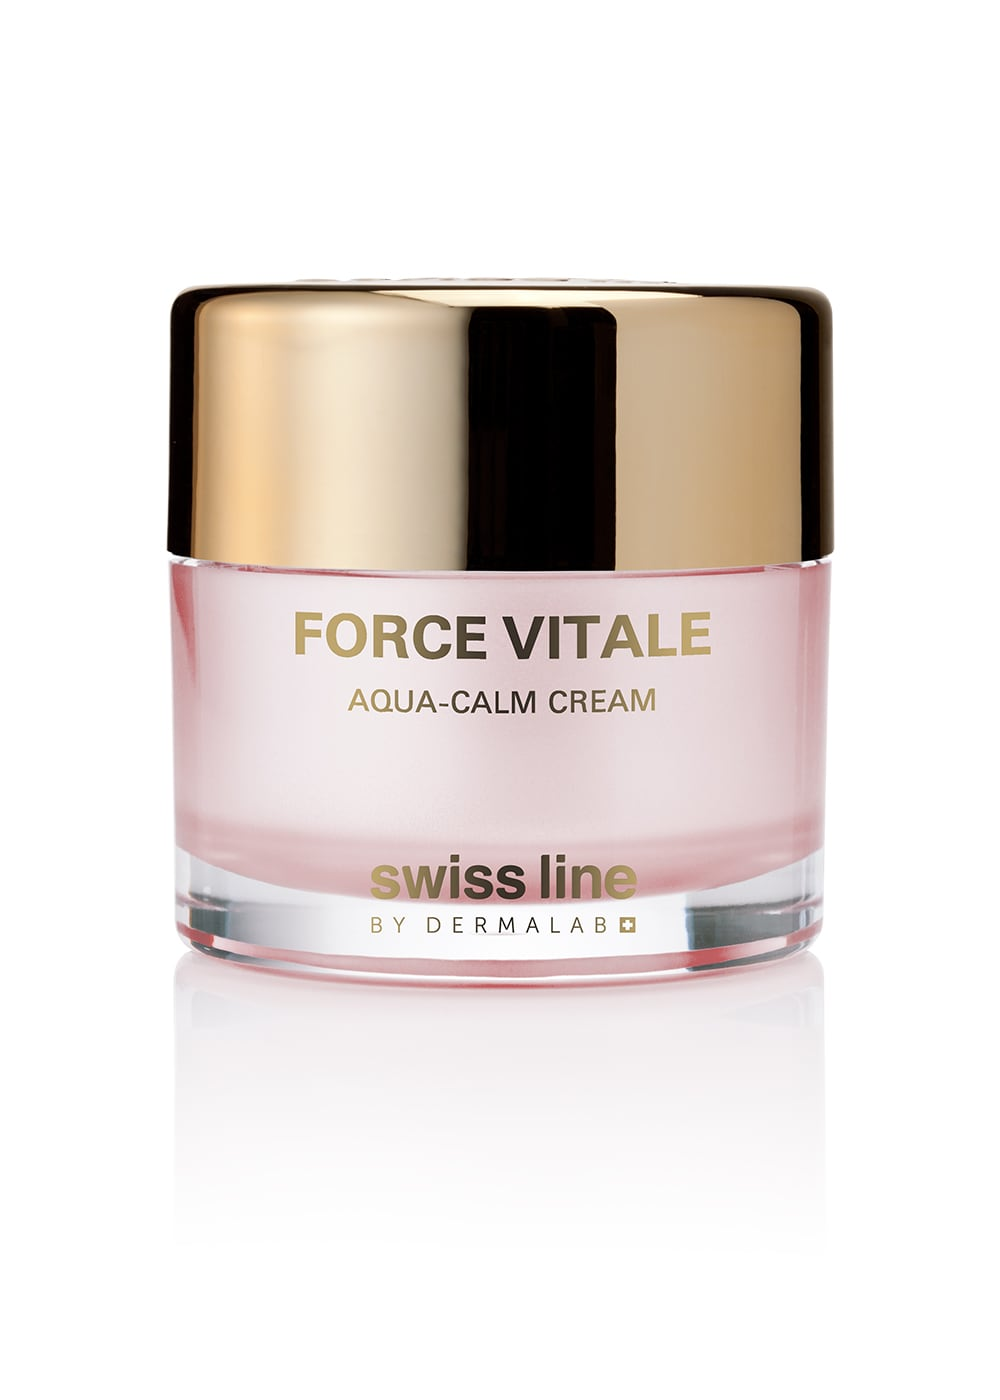 Swiss Line Force Vitale Aqua-Calm Cream